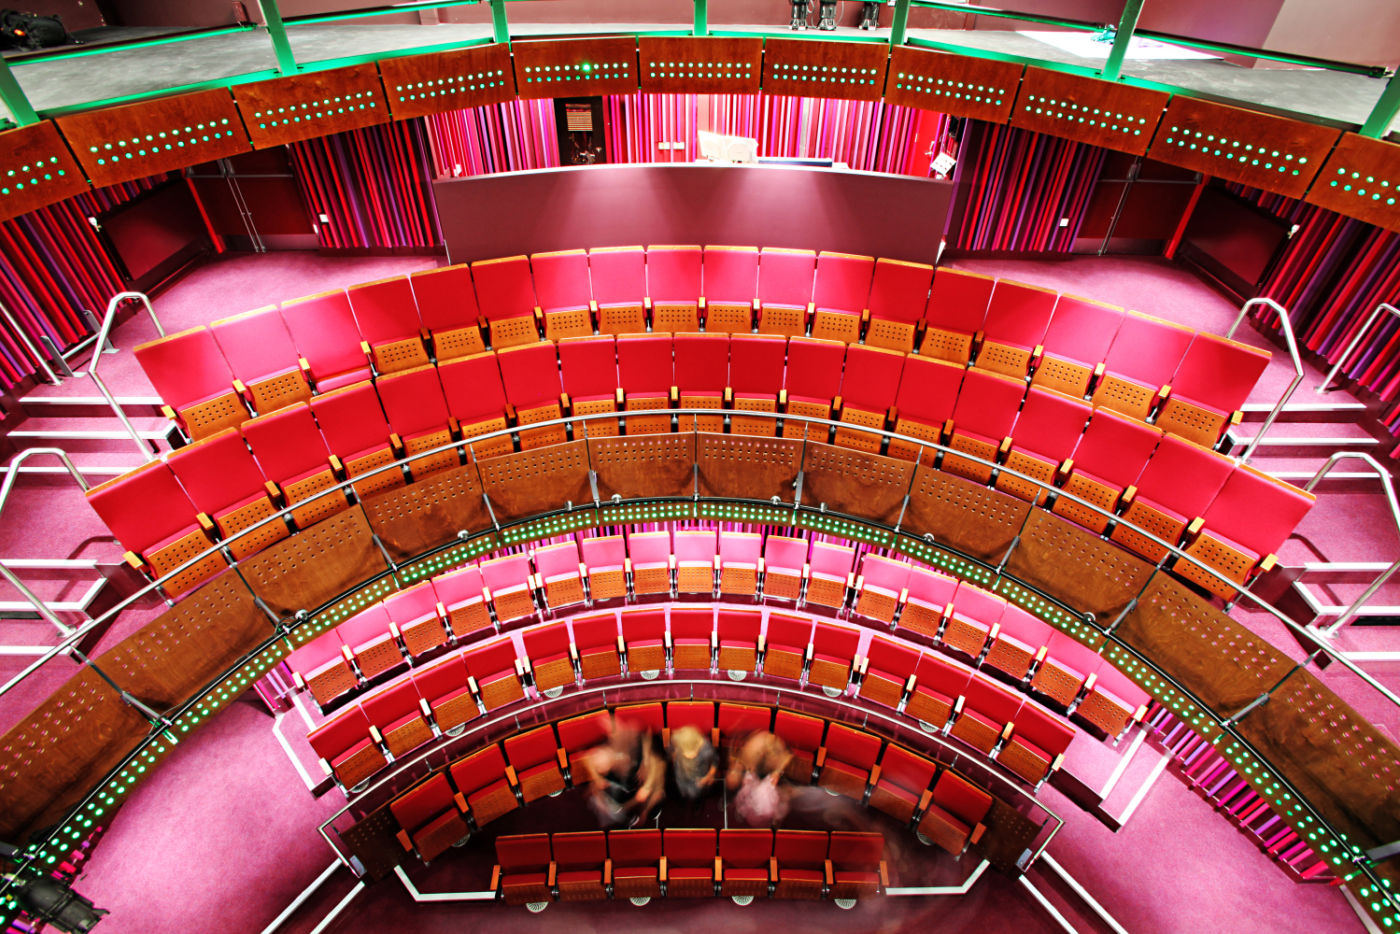 Overhead view of theatre seating